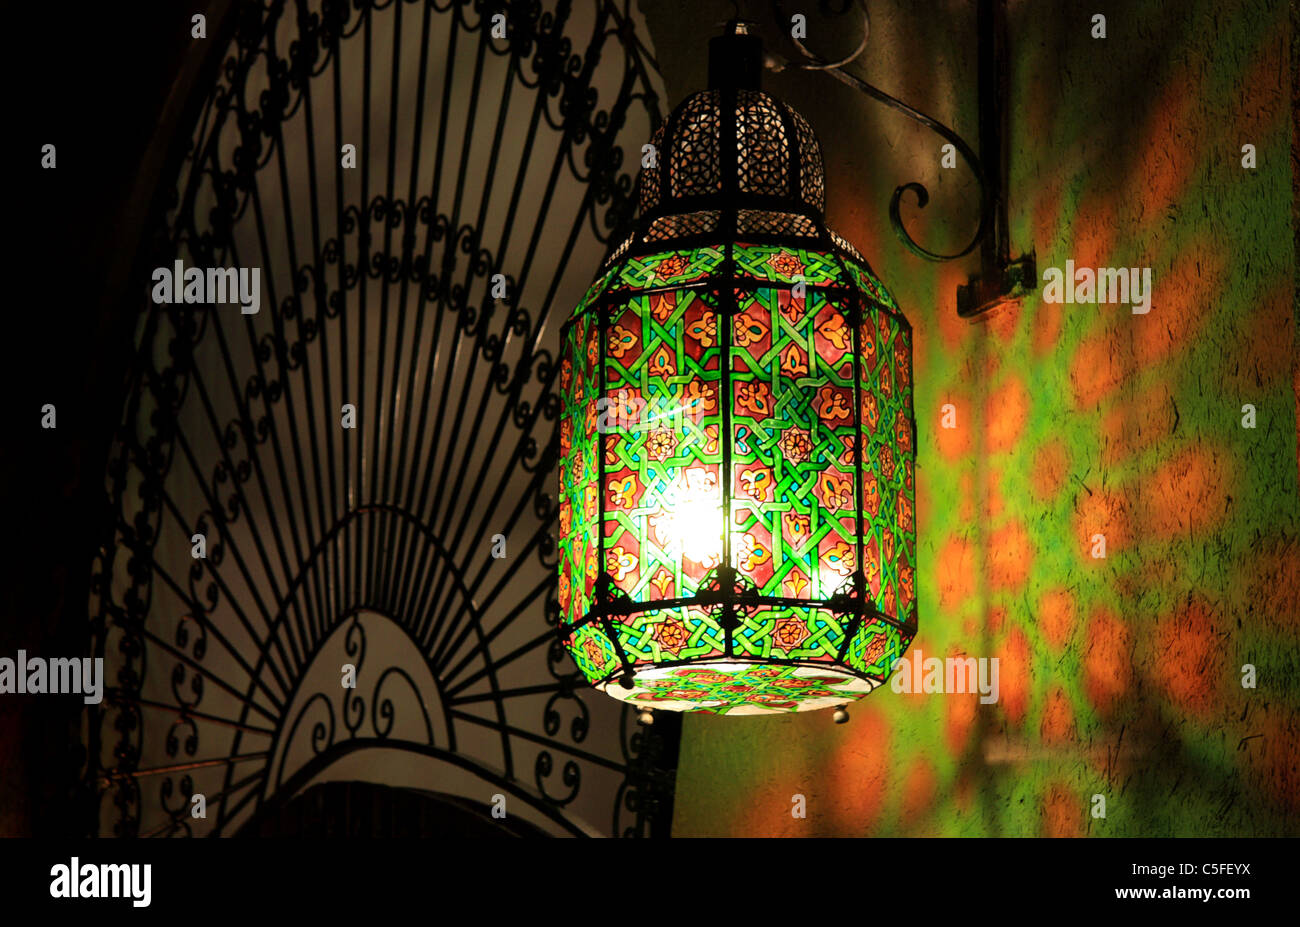 Green Glass Moroccan Lantern Gallery of Light